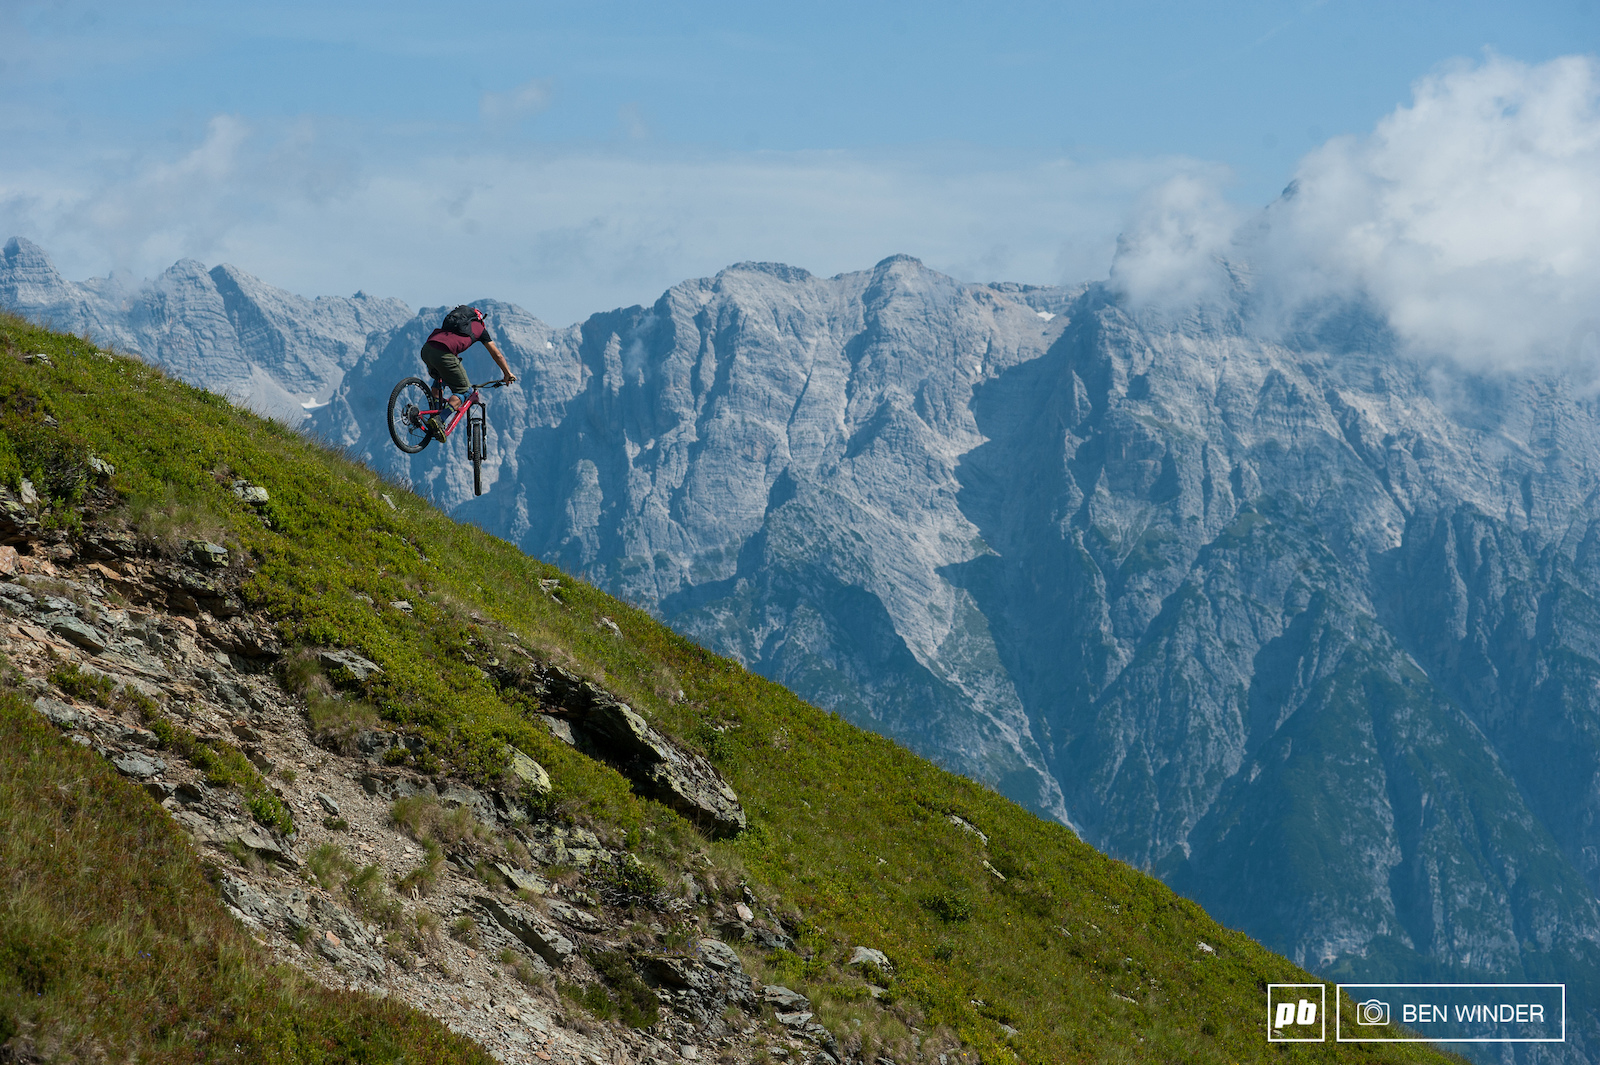 After a short pedal from the top of the lift you drop into Leogang.